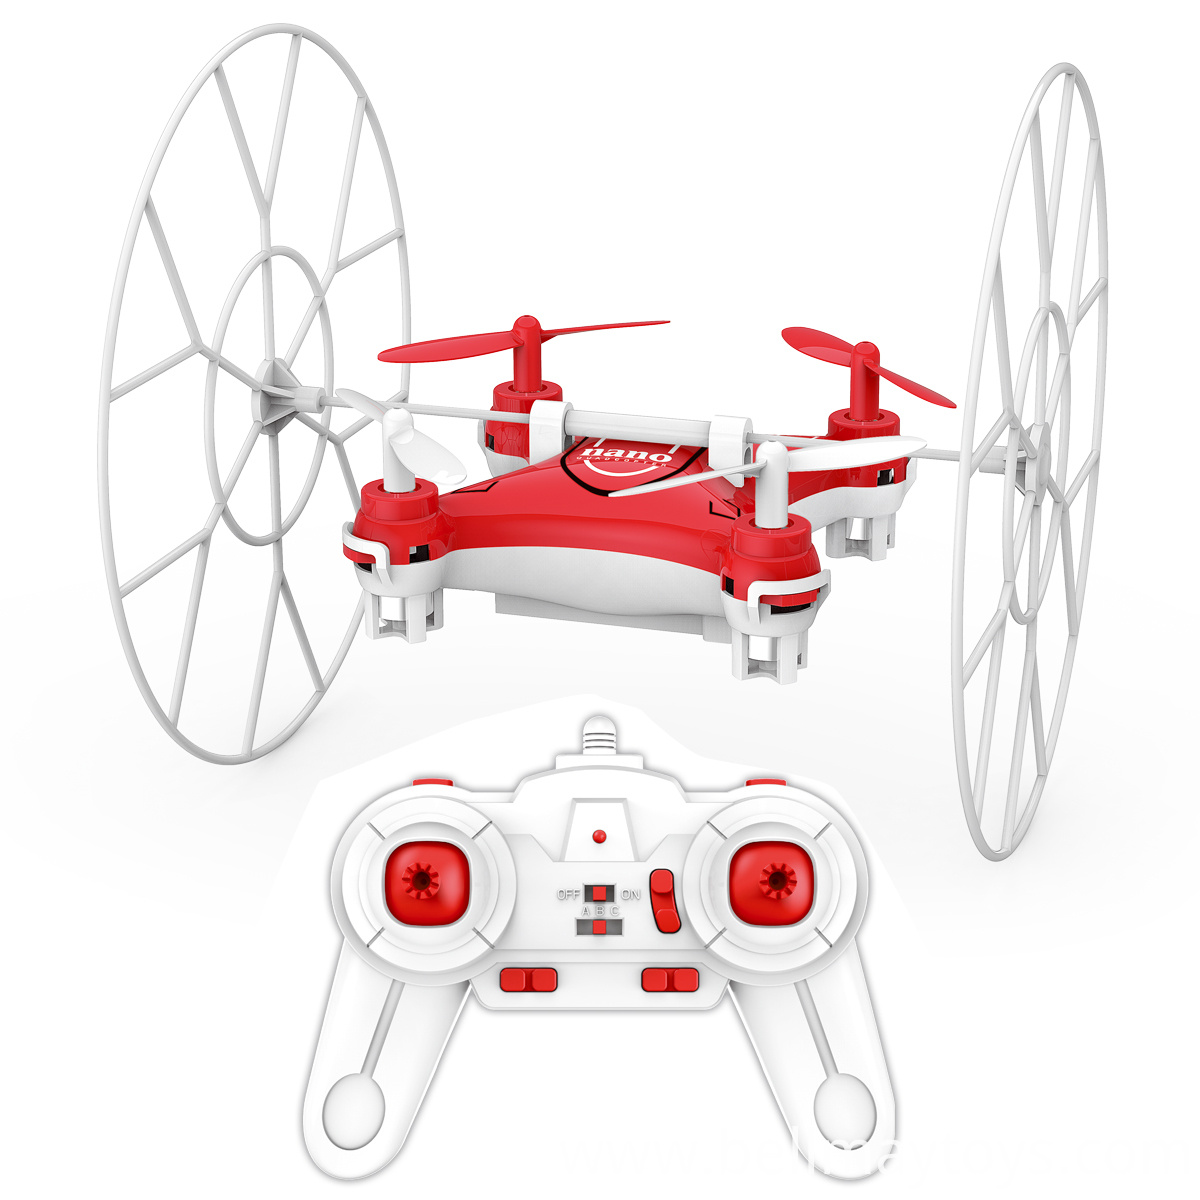 6 Axis Drone